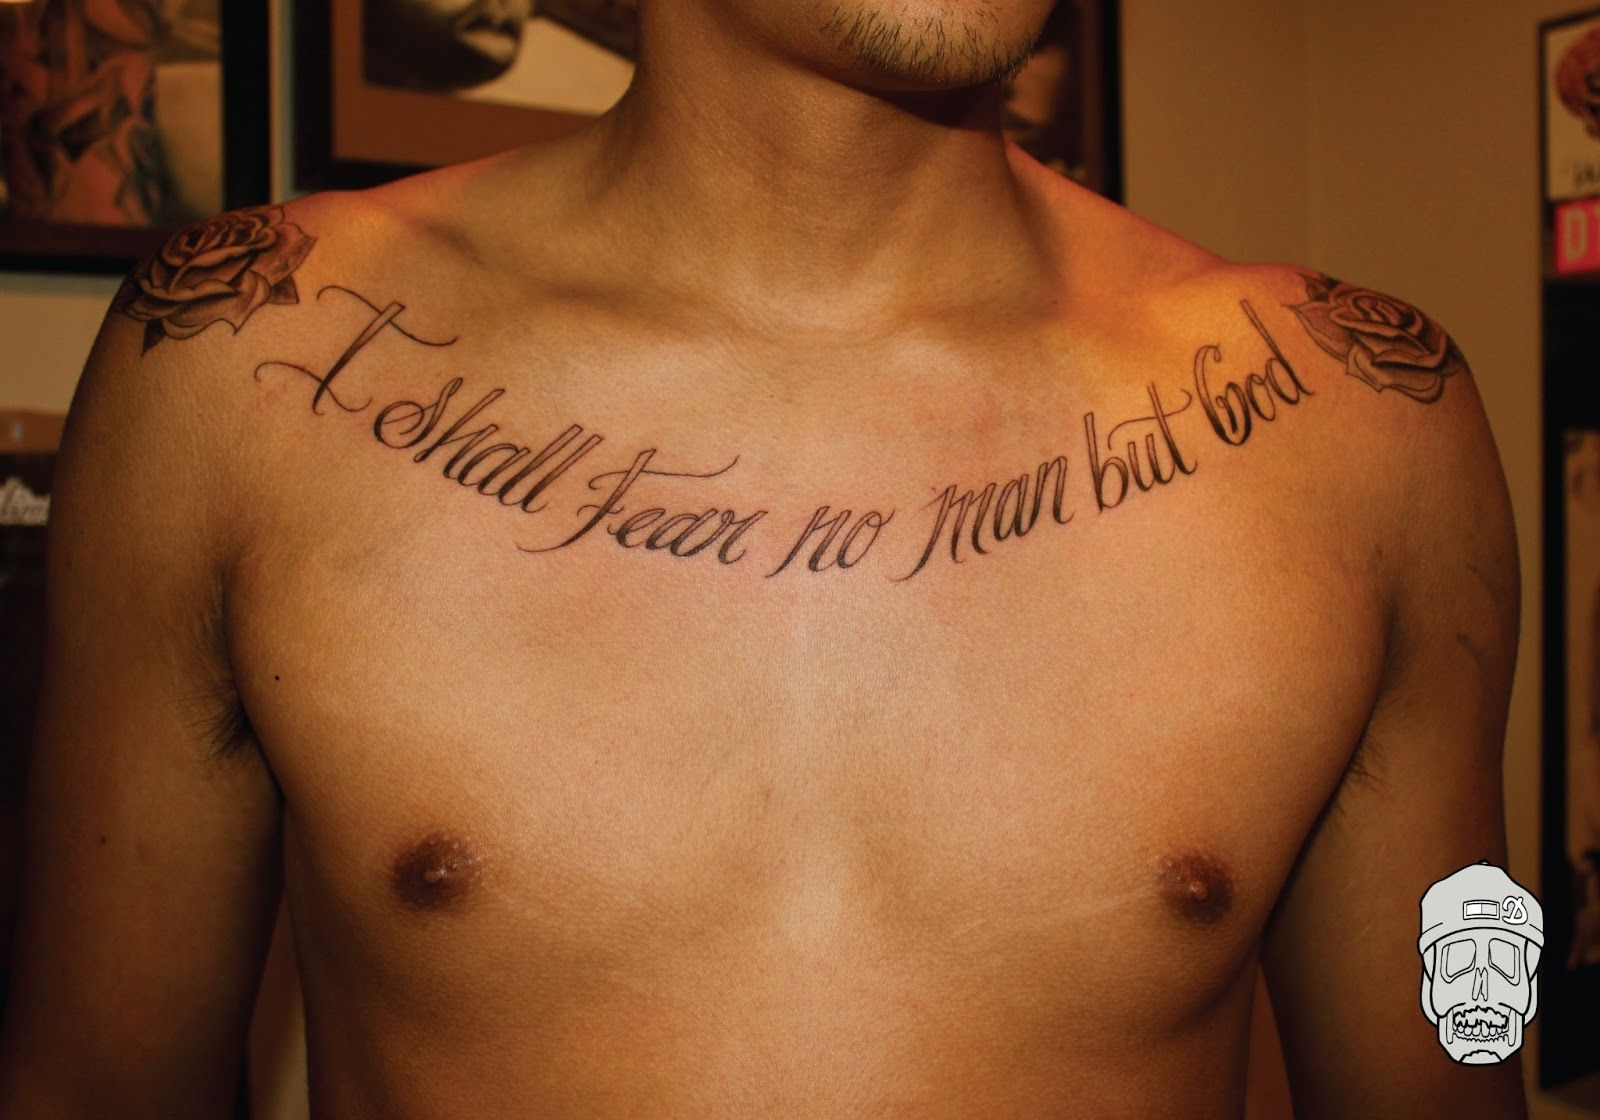 I shall fear no man but God. chest tattoo Tattoo quotes